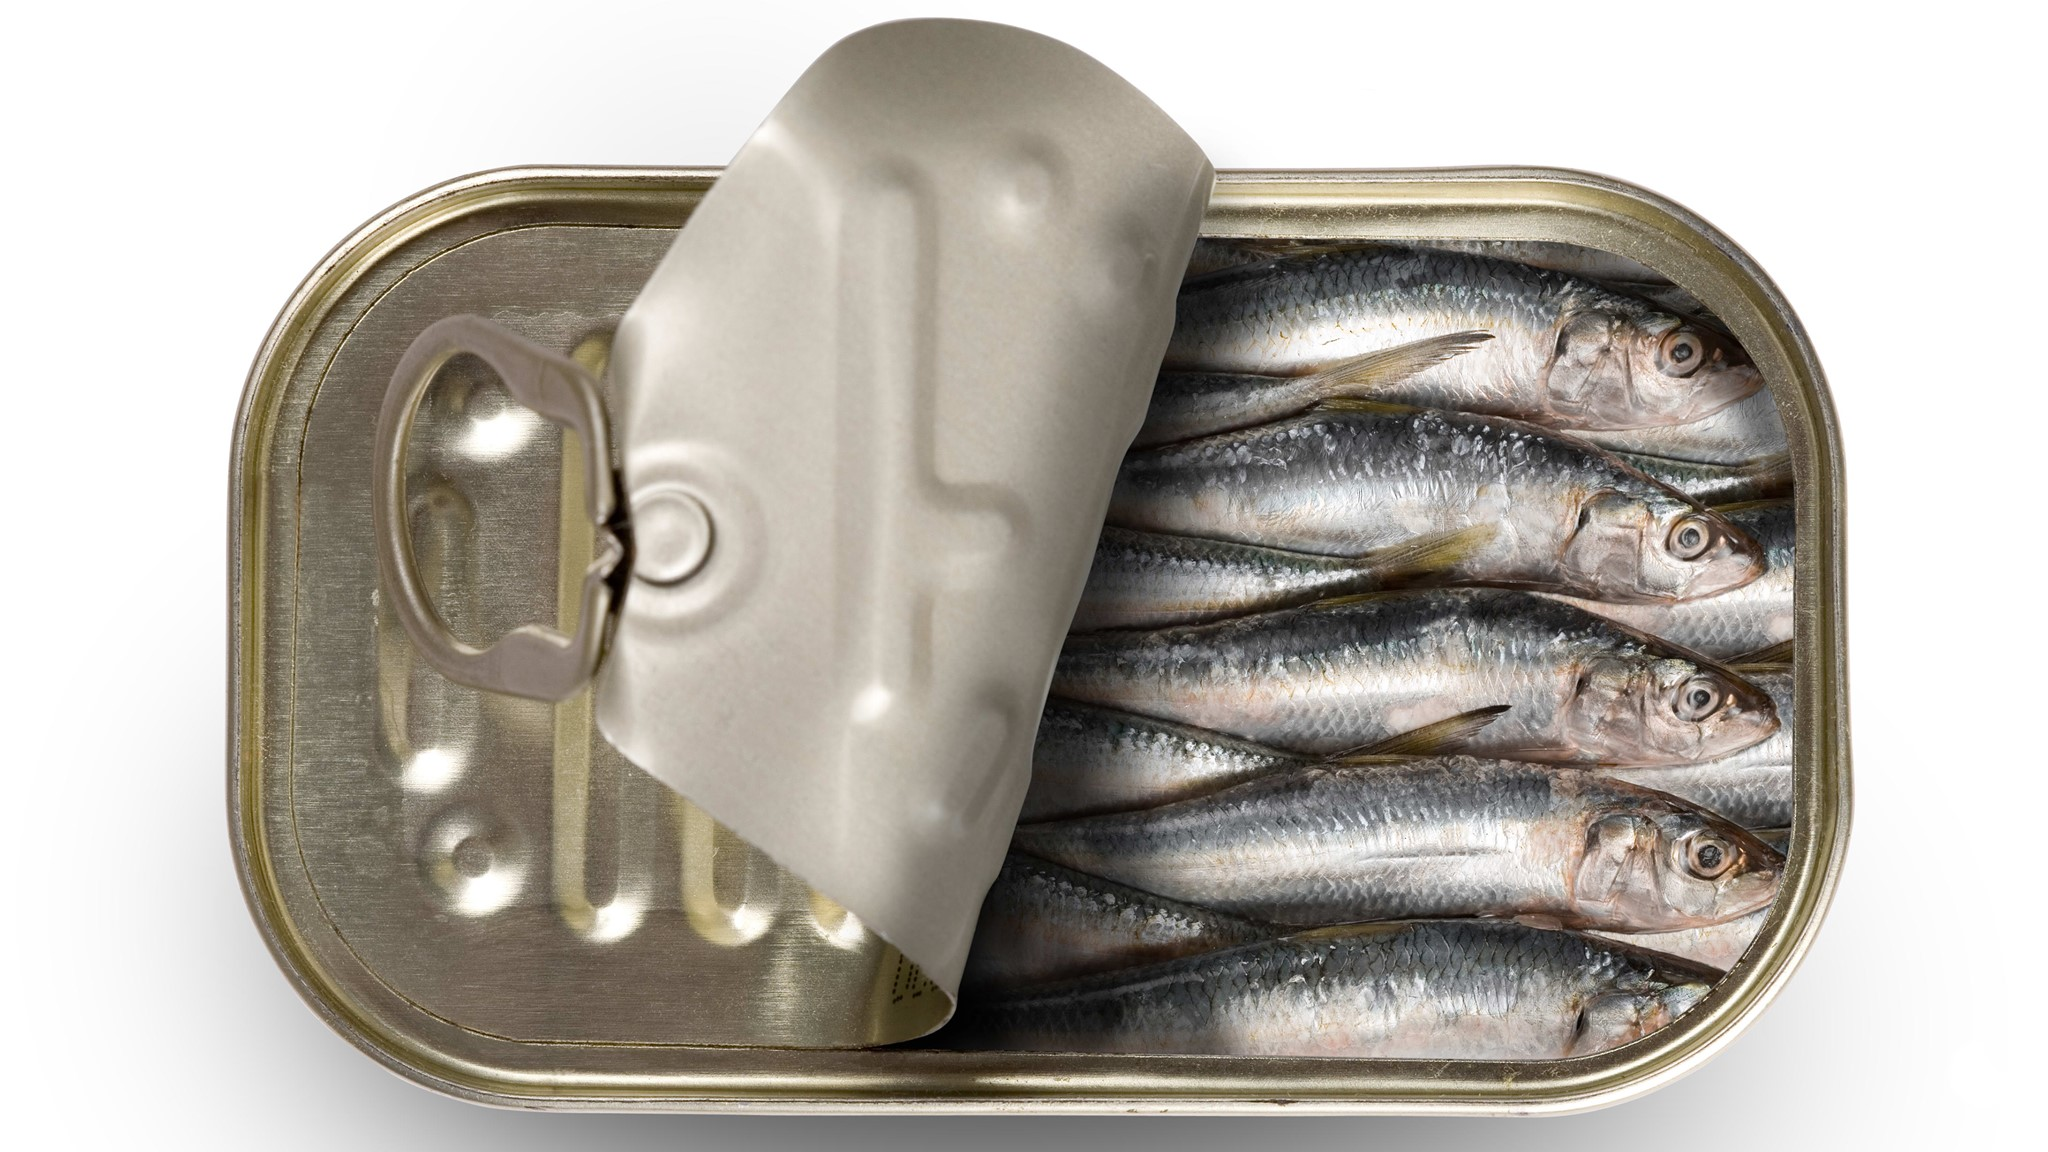 Most Needed Items for this week is Sardines